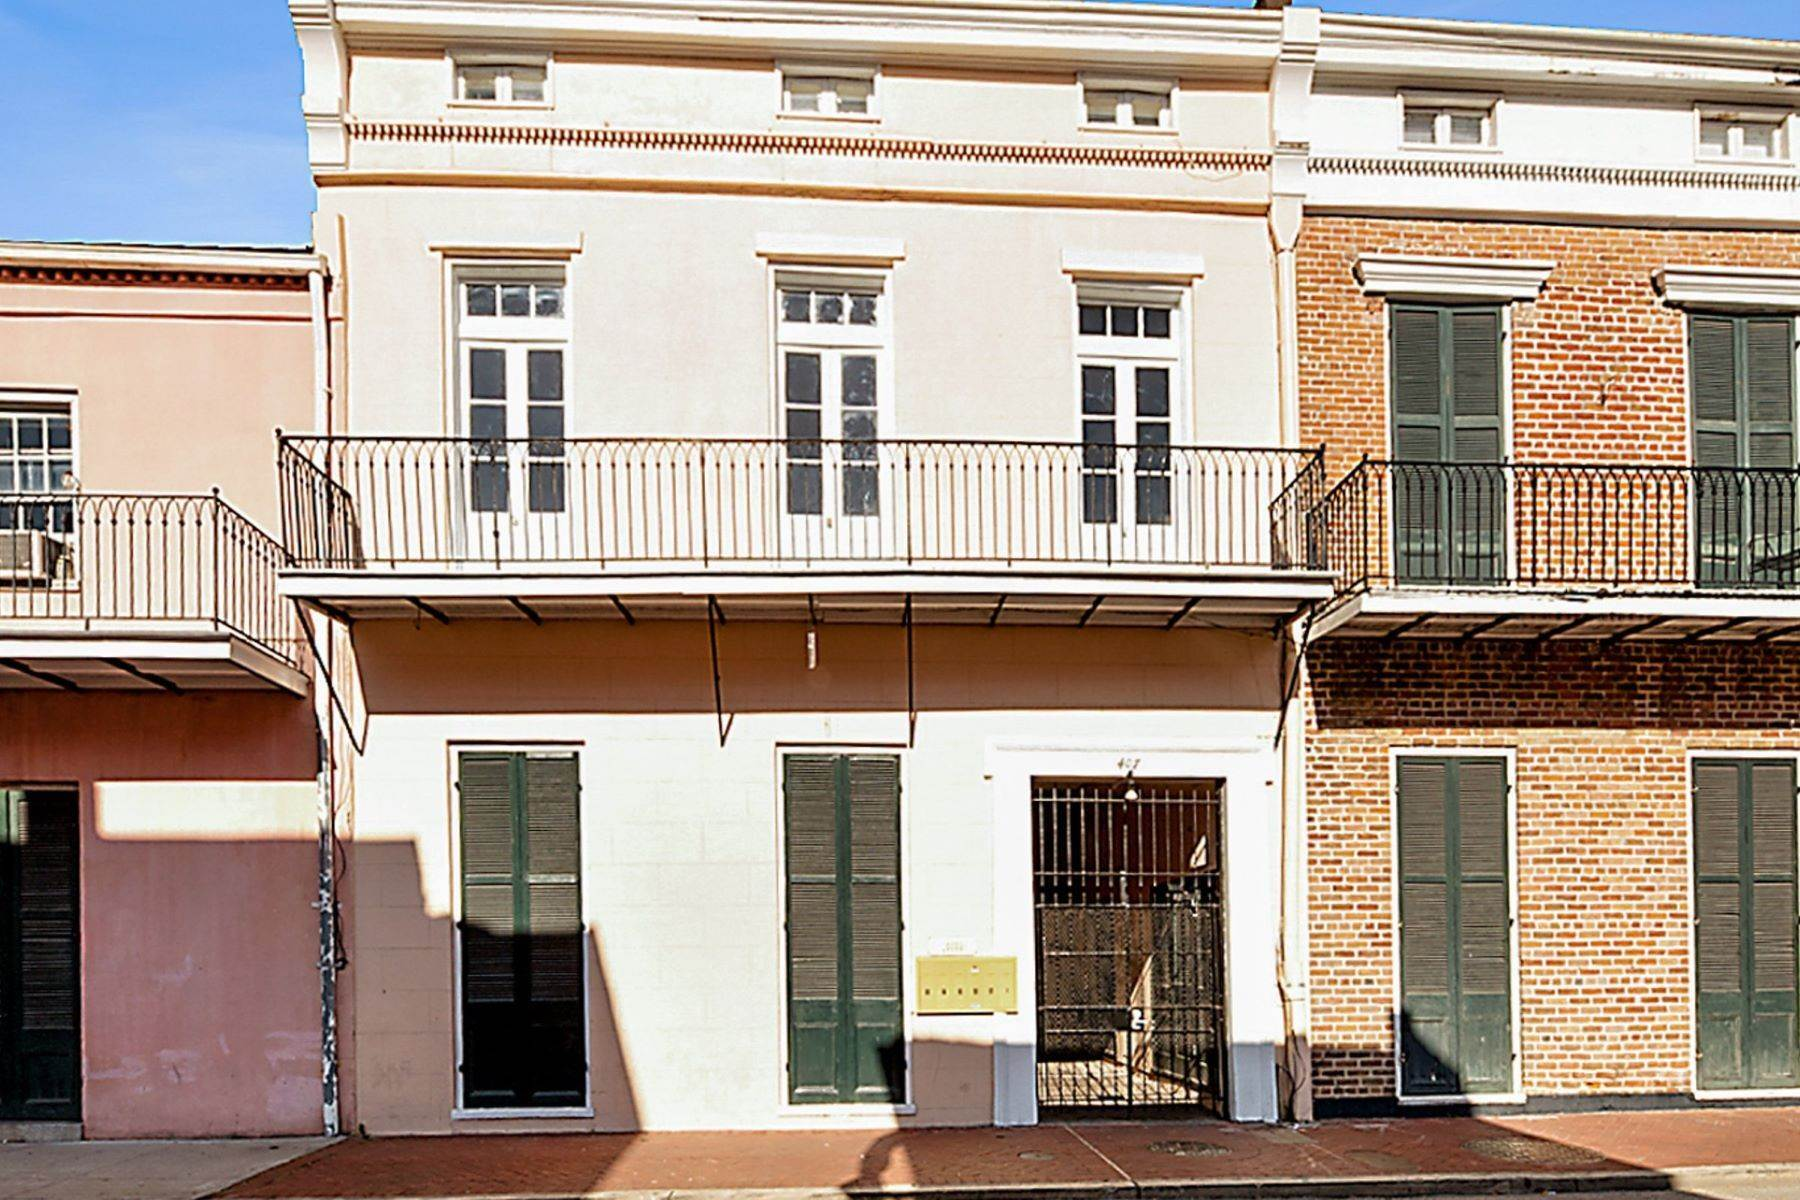 Condominiums for Sale at 407 Burgundy Street, Unit 2 407 Burgundy St, Unit 2 New Orleans, Louisiana 70112 United States